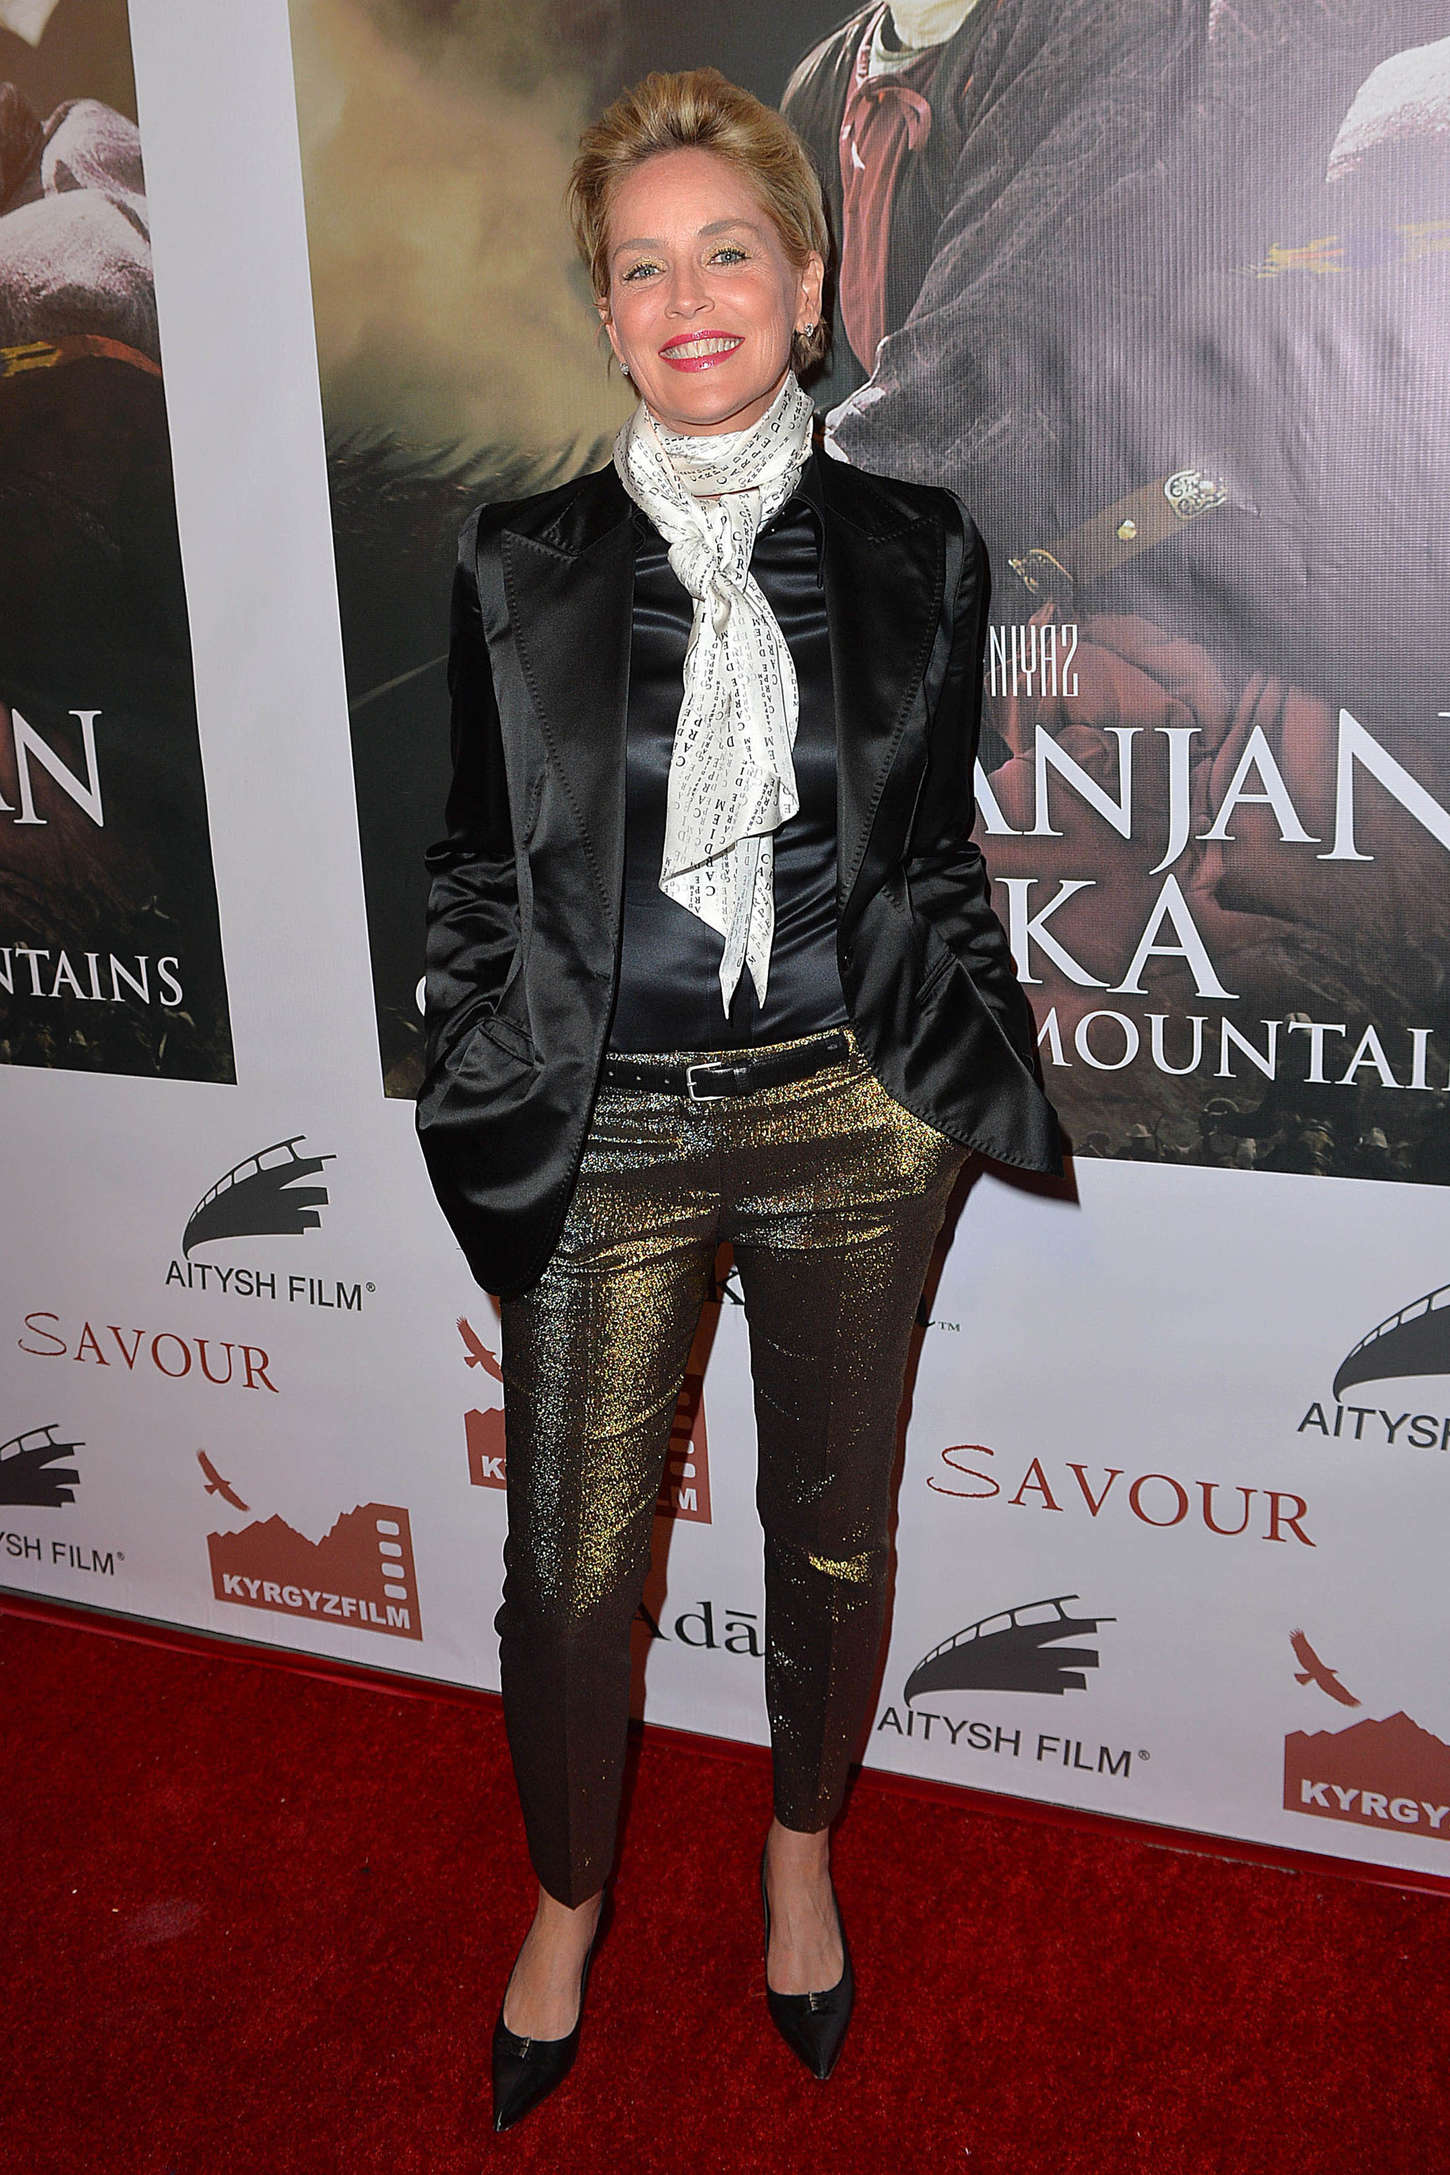 Sharon Stone at Screening of Kurmanjan Datka Queen of the Mountains in Hollywood